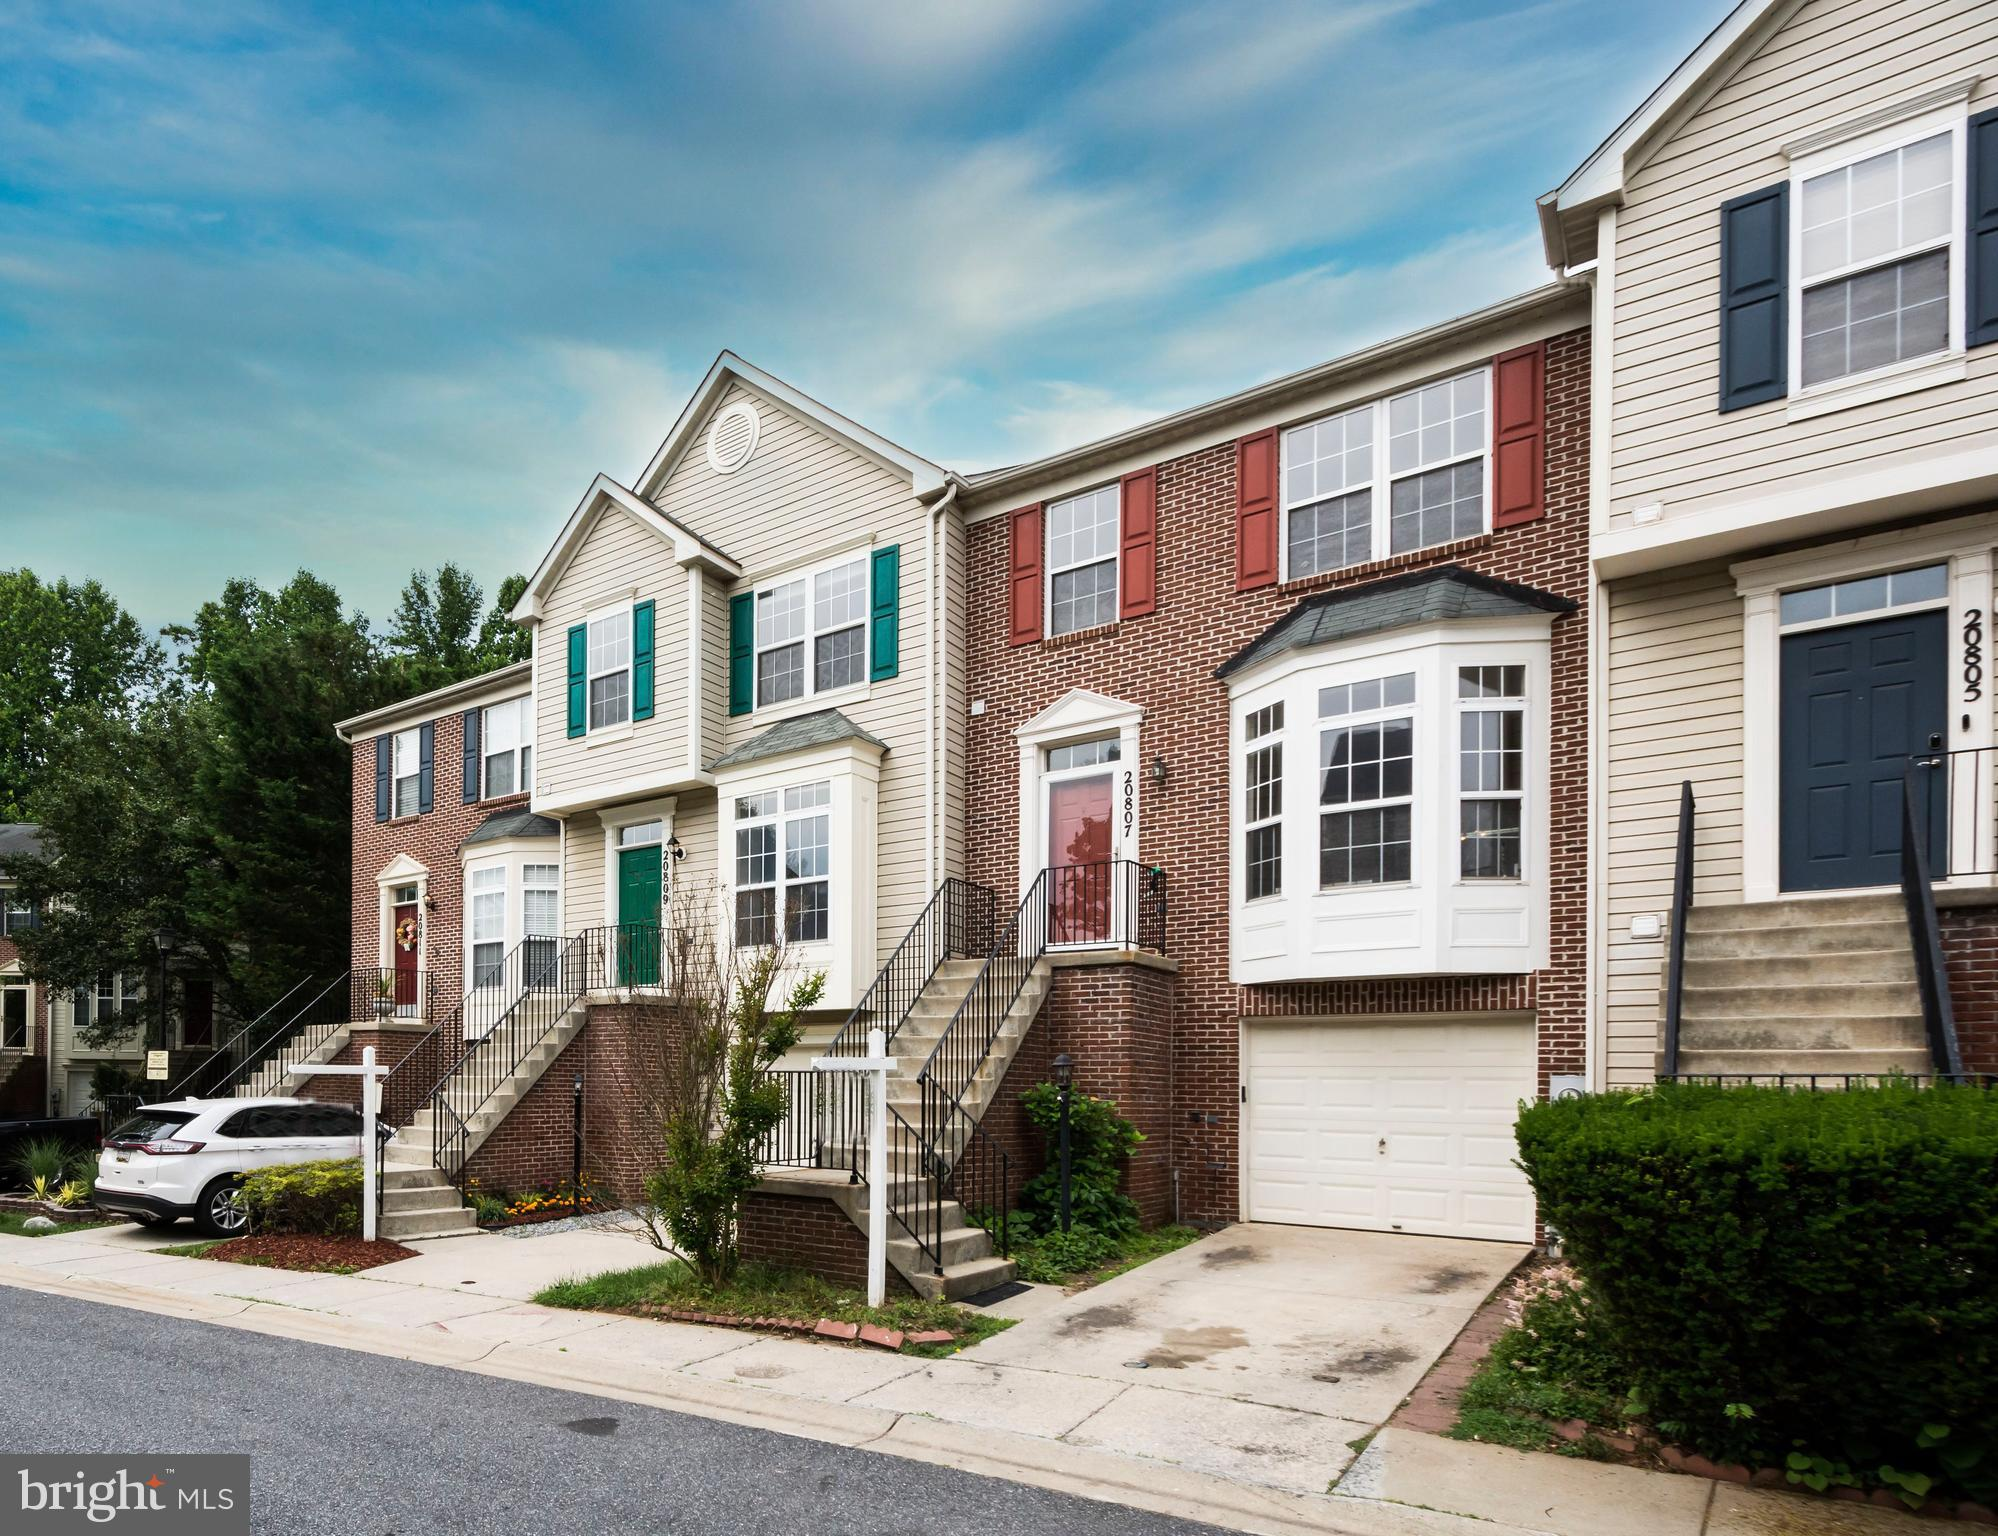 Short sale with immediate Pre-occupancy available, MUST qualify to purchase for pre-occupancy to be